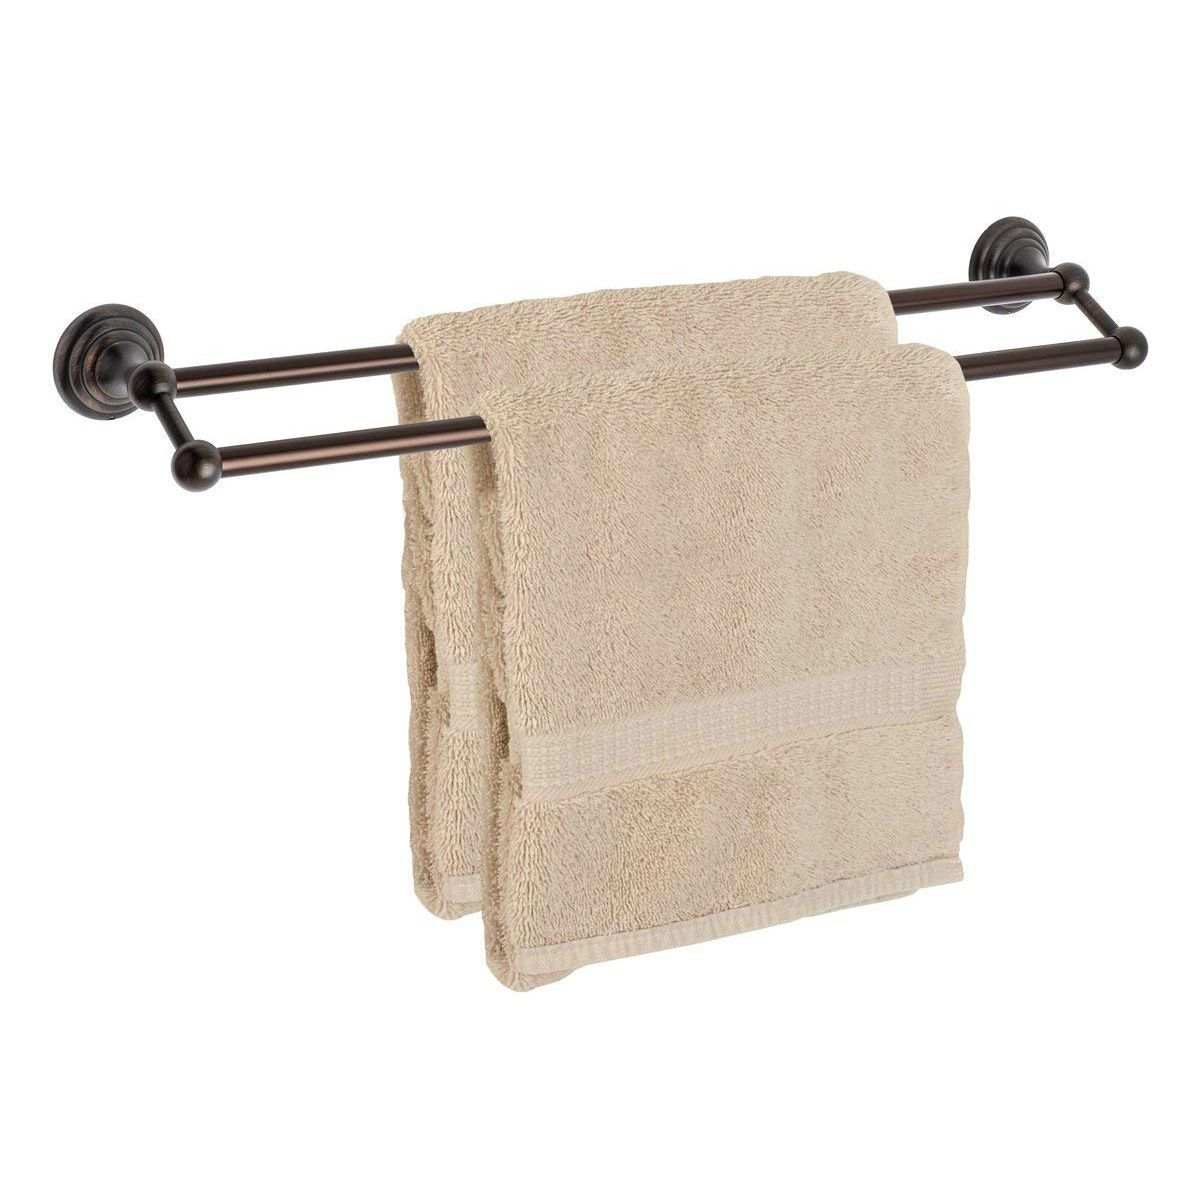 "Dynasty Hardware Bel Air 7516-ORB Oil Rubbed Bronze 24"" Double Towel Bar"